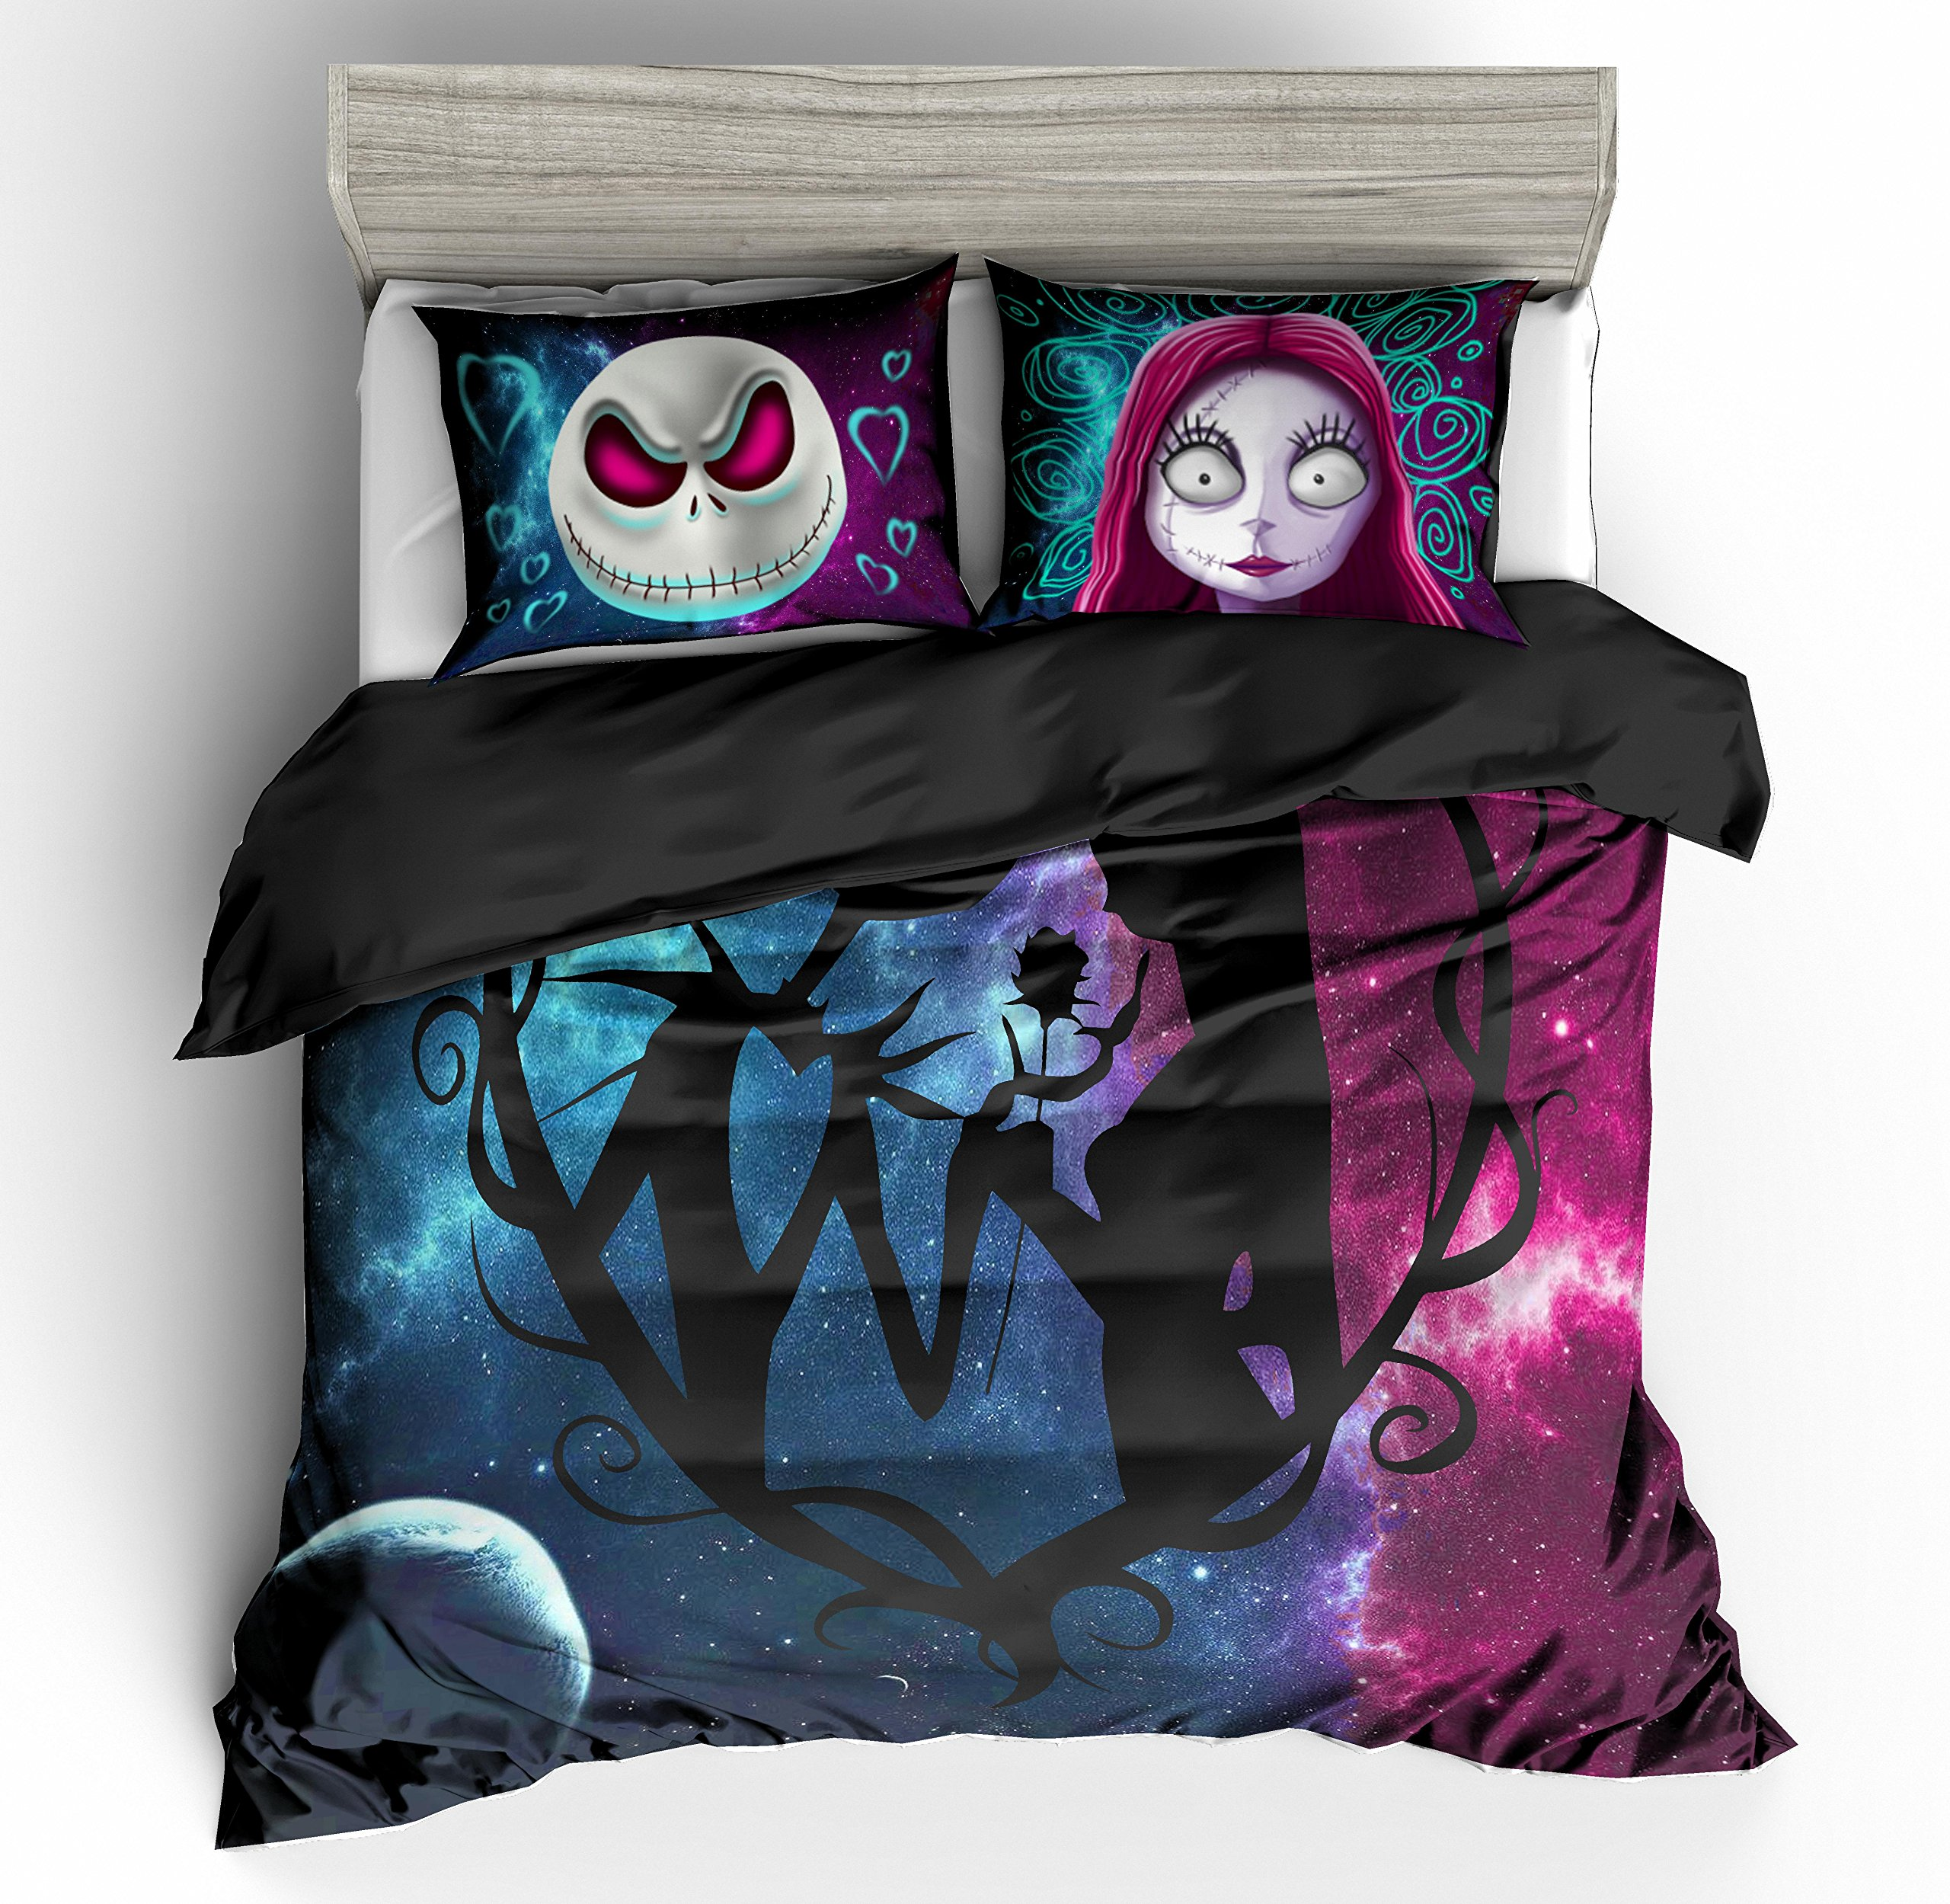 KTLRR 3D Nightmare Before Christmas Duvet Cover Sets,Jack and Sally Valentine's Day Rose Decor, 100% Microfiber Galaxy Bedding Set with Pillow Shams 3PCS Bedding,No Comforter (Christmas, Queen 3pcs)